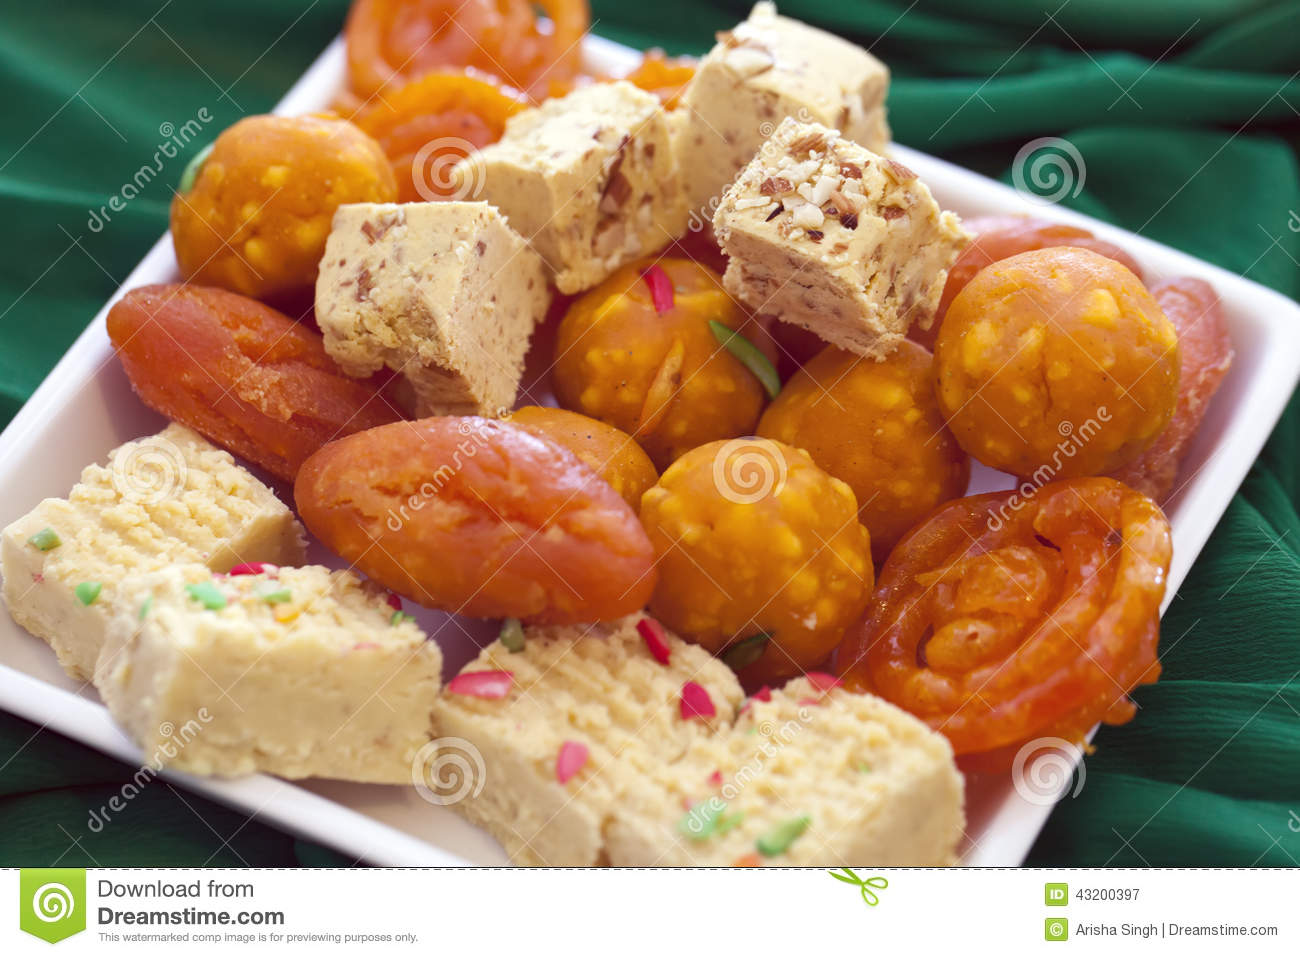 Colorful Indian Diwali sweets in a plain white dish